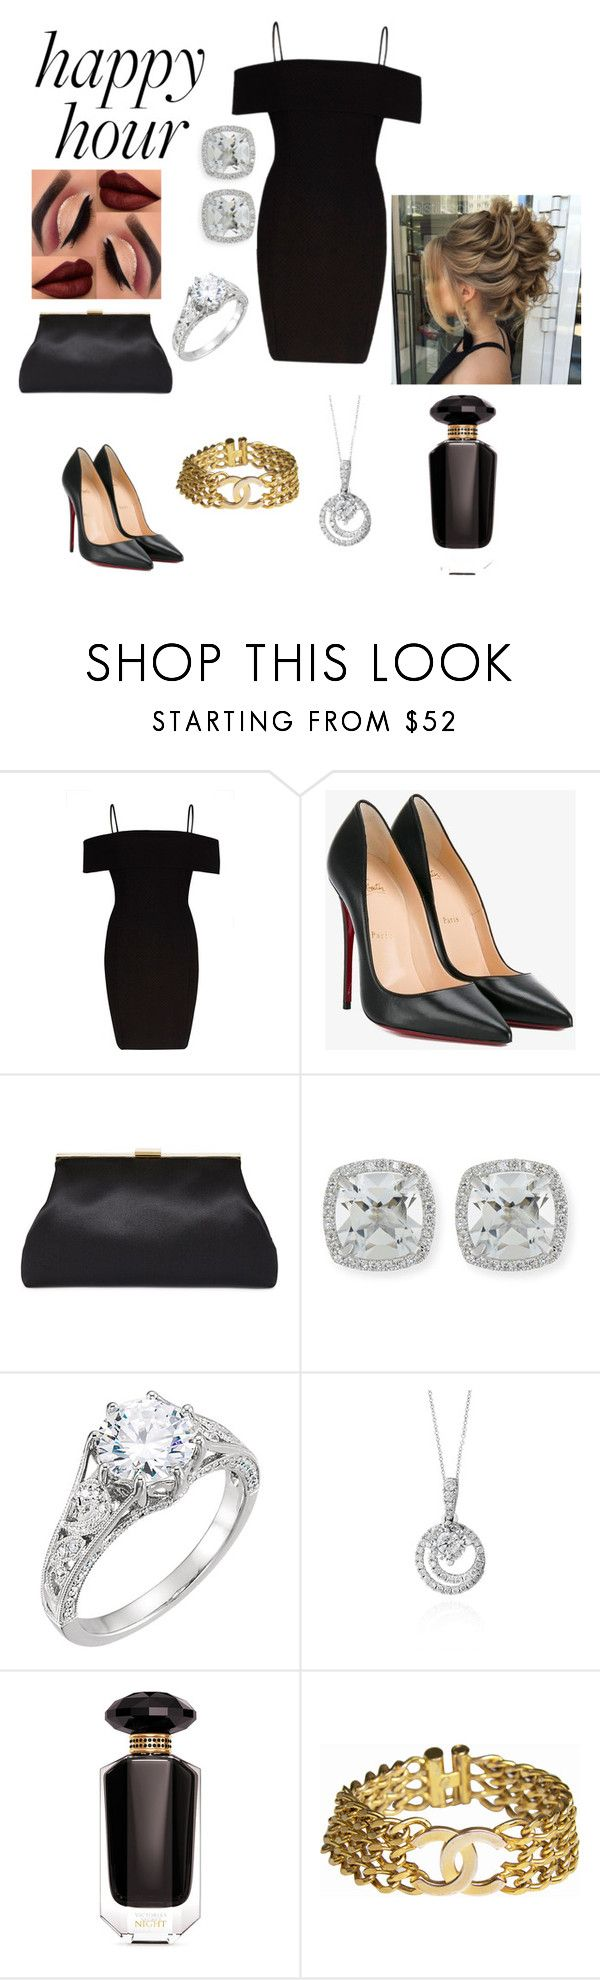 """""""little black dress"""" by achelios ❤ liked on Polyvore featuring River Island, Christian Louboutin, Frederic Sage, Effy Jewelry, Victoria's Secret and Chanel"""